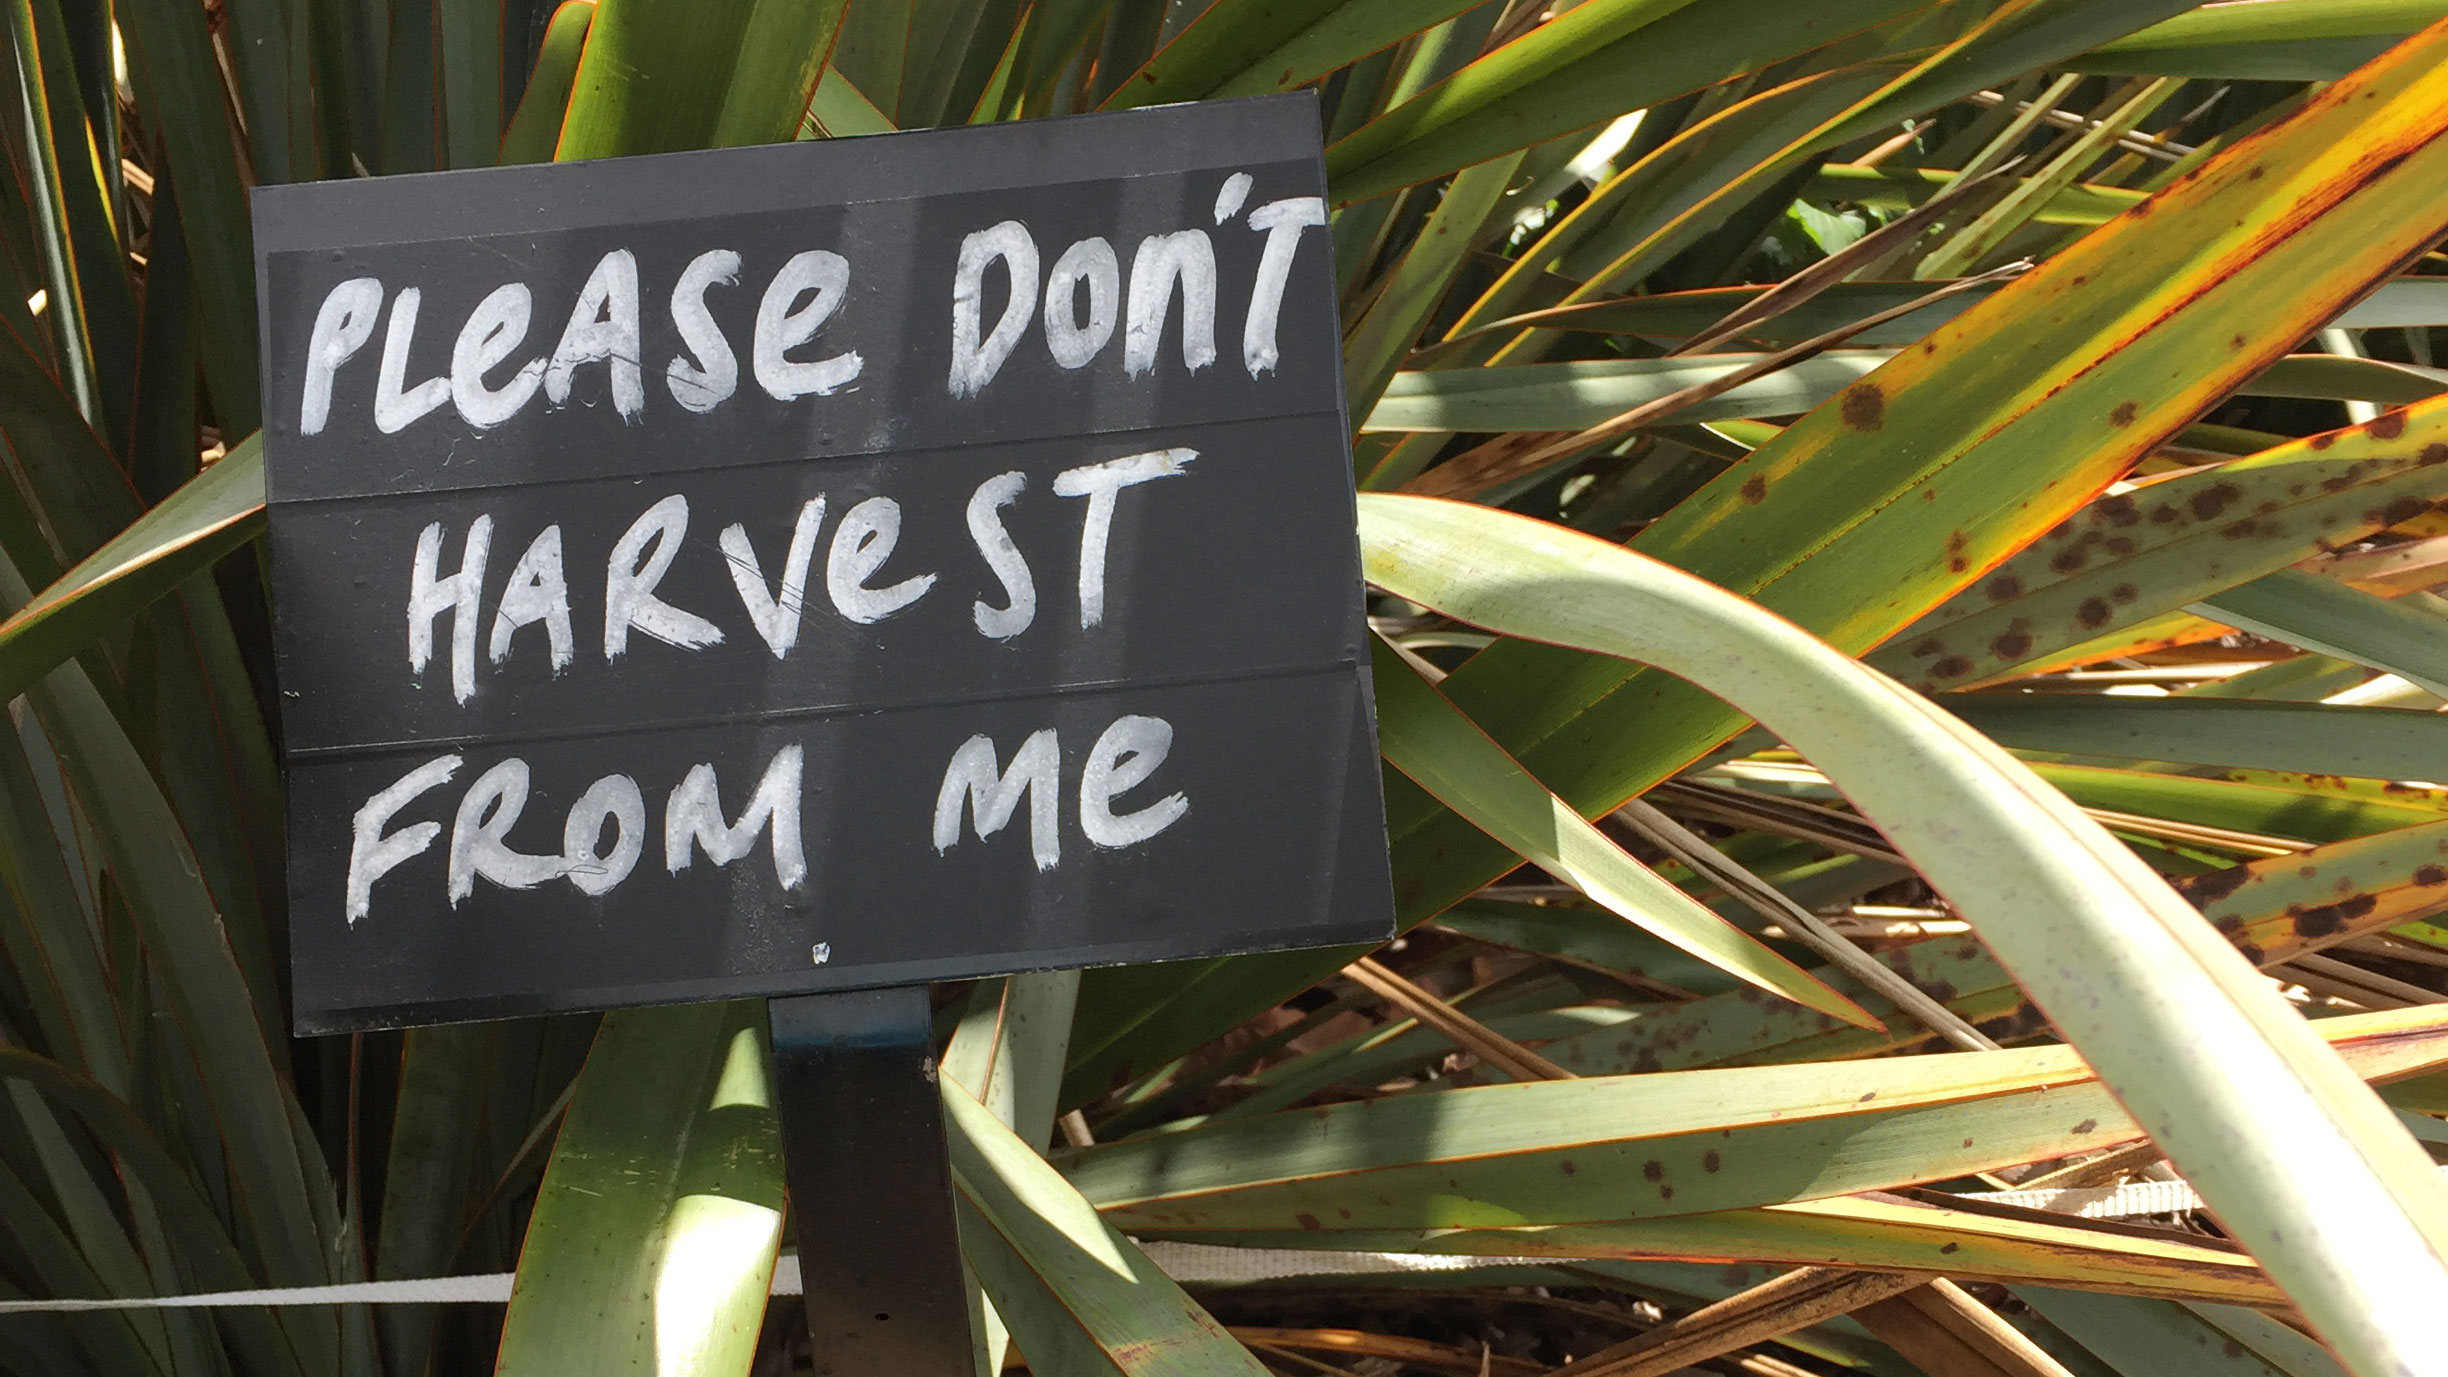 The Auckland Botanical Gardens have lots of signs and this one asked people not to cut the harakeke (flax) and I felt the same way.